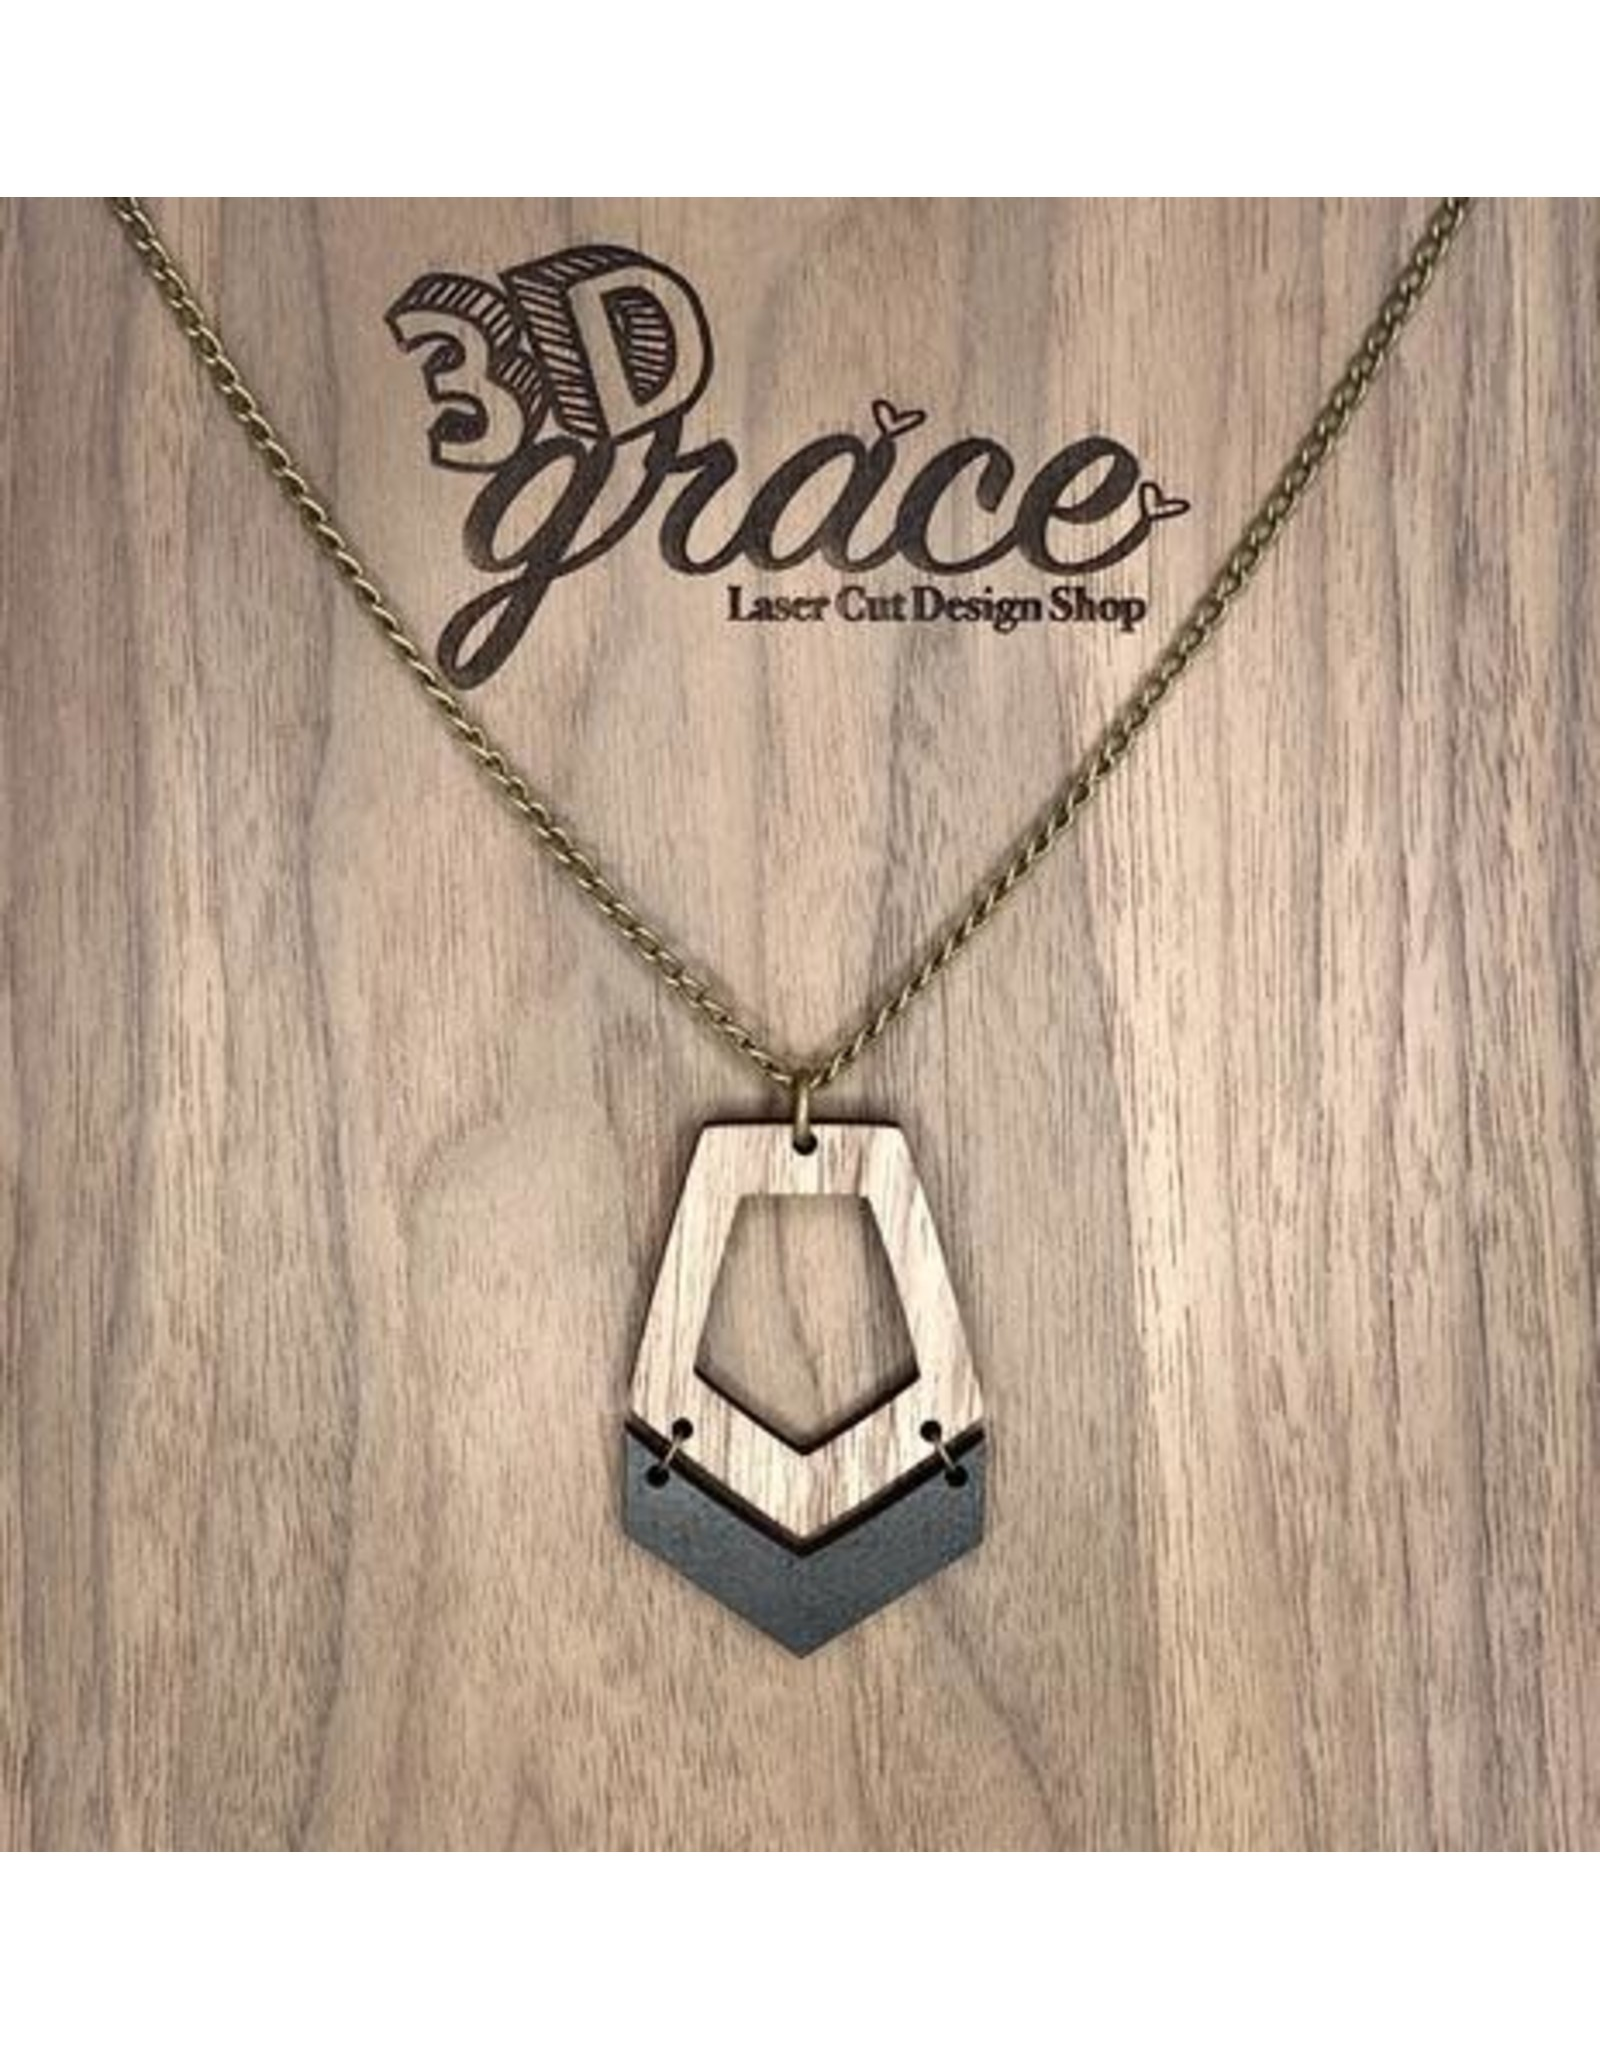 WOODEN LASER CUT NECKLACE - NORA